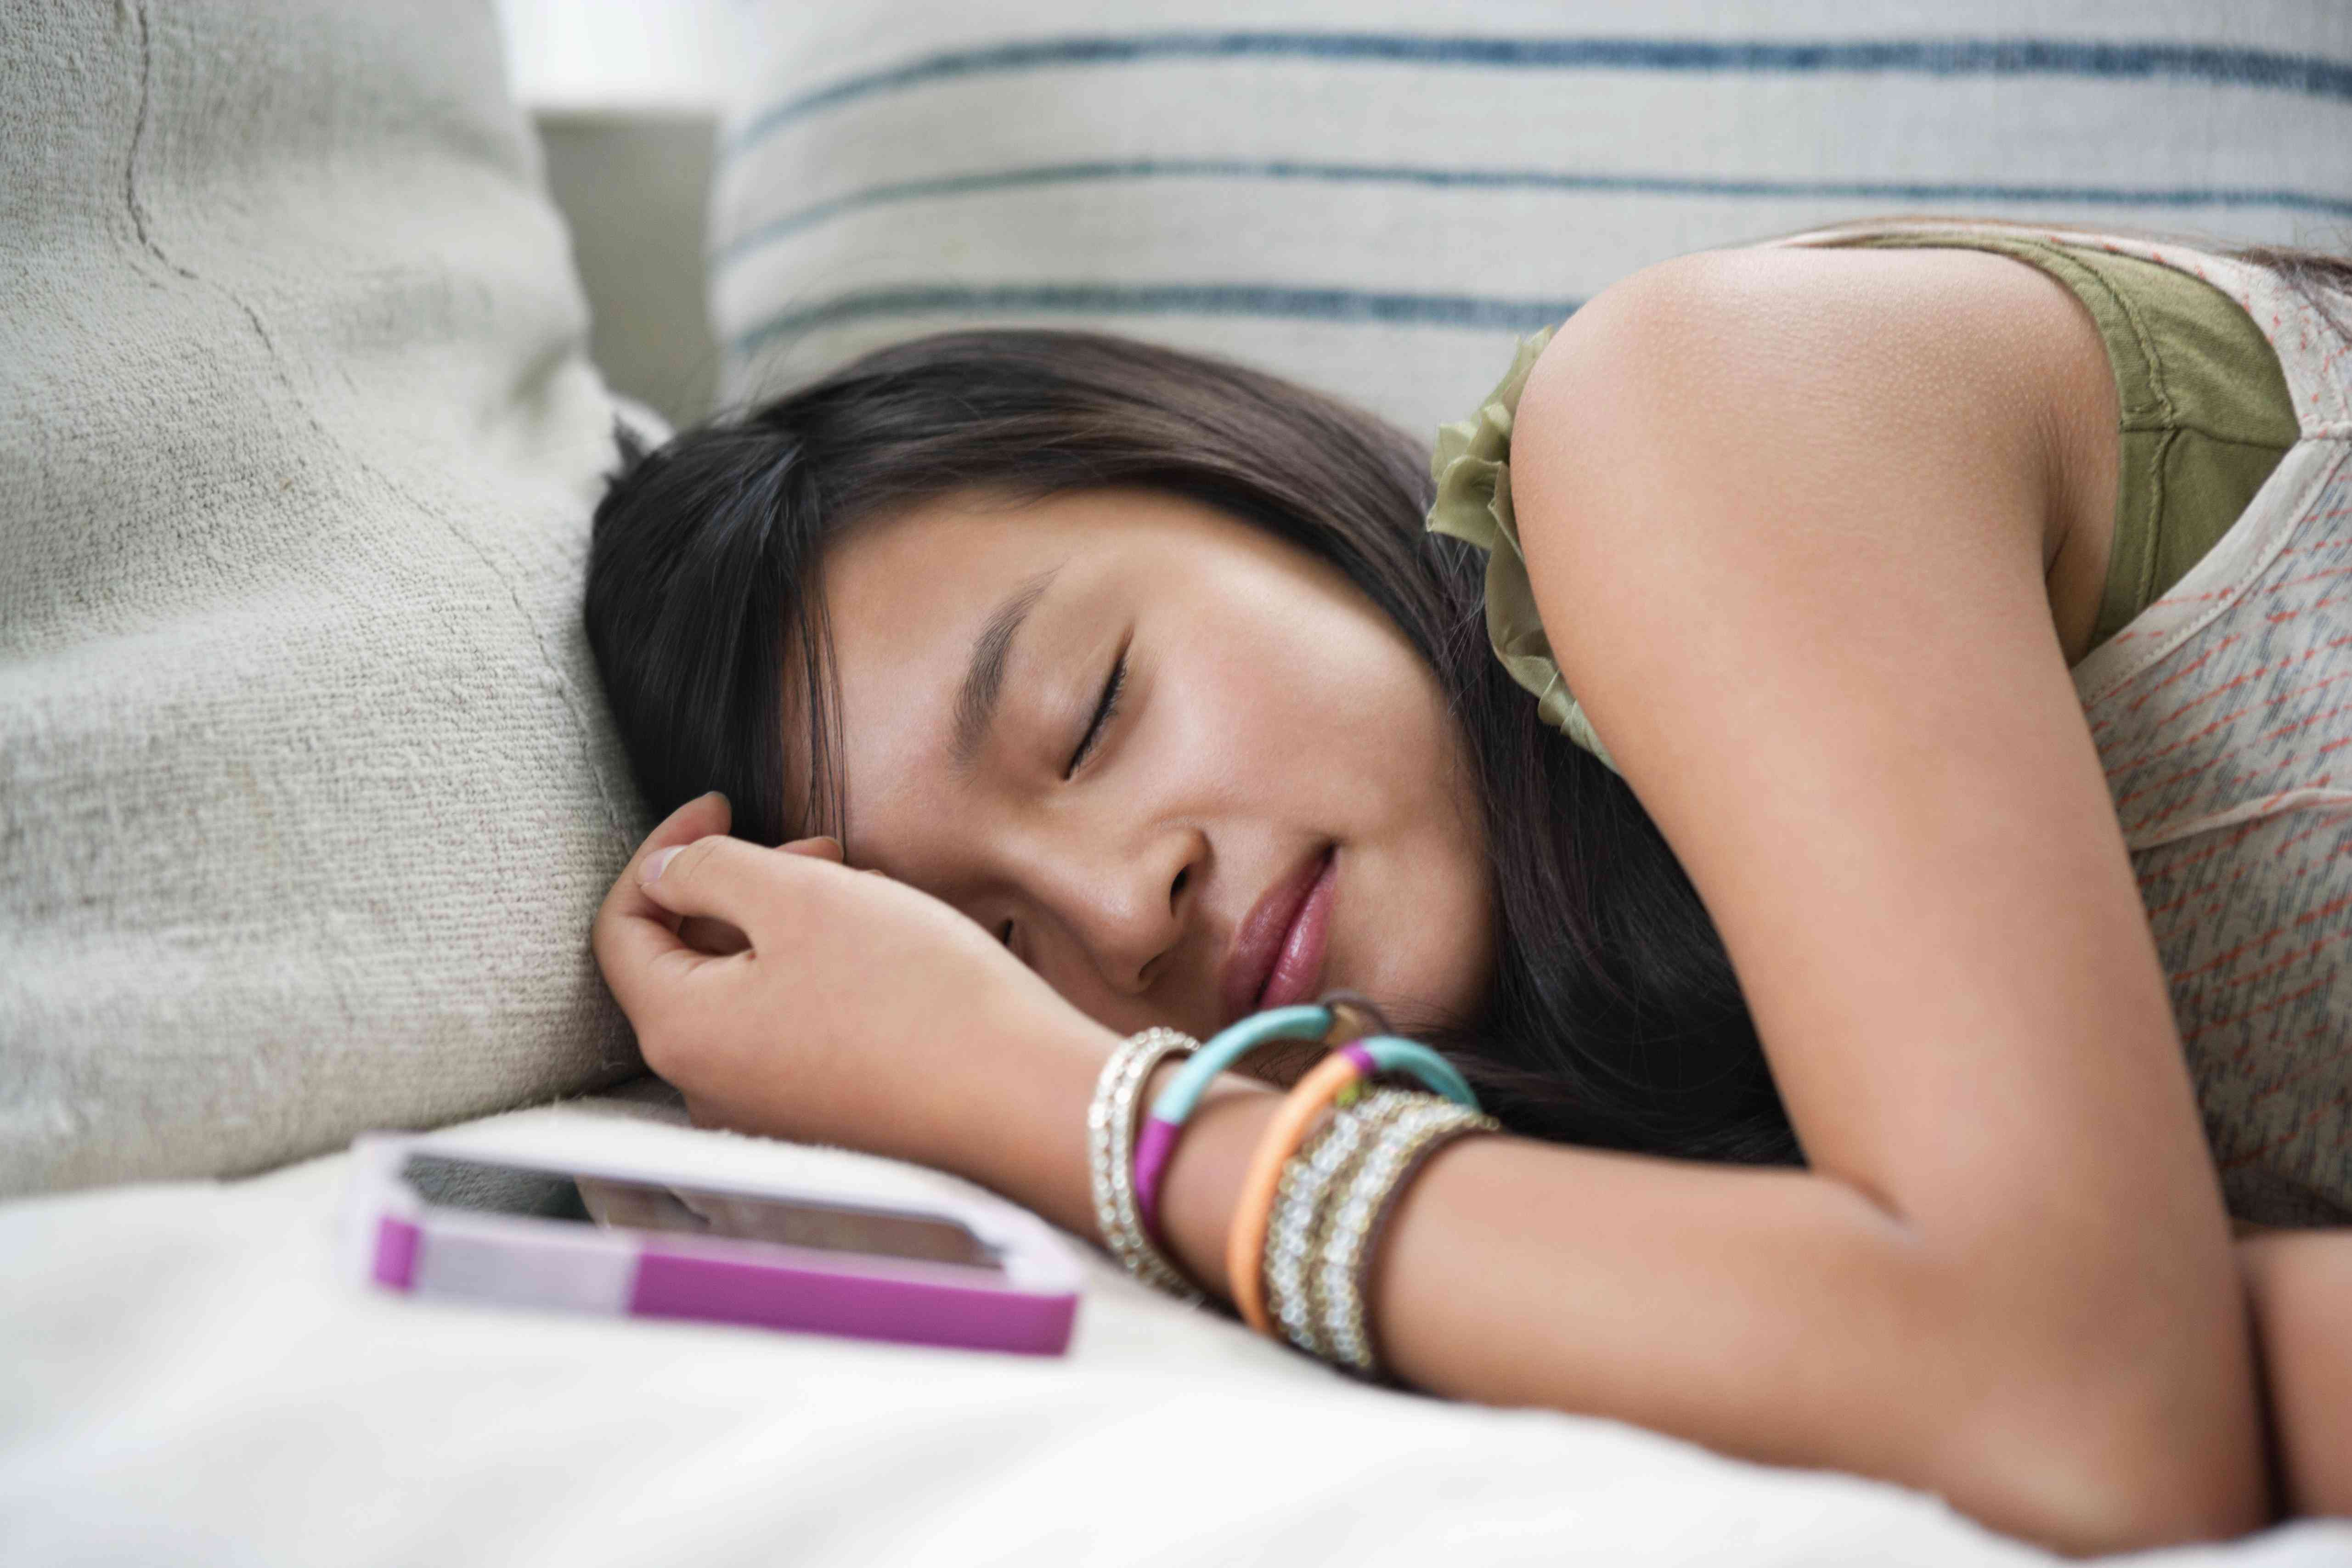 A teenage girl asleep on the couch